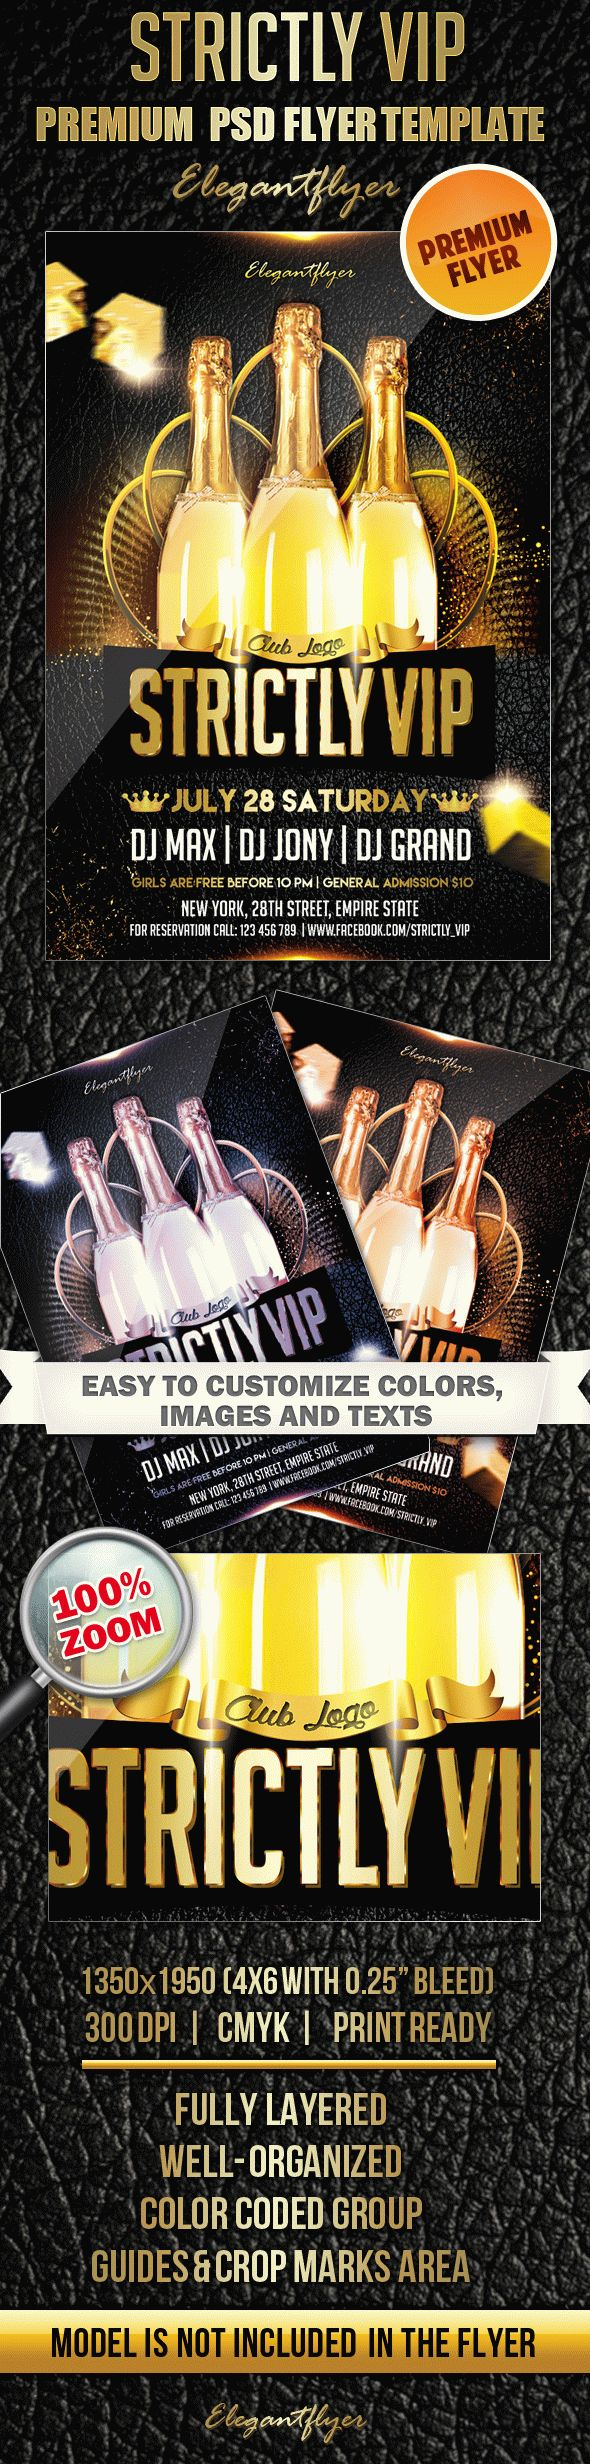 Strictly VIP – Premium Club flyer PSD Template